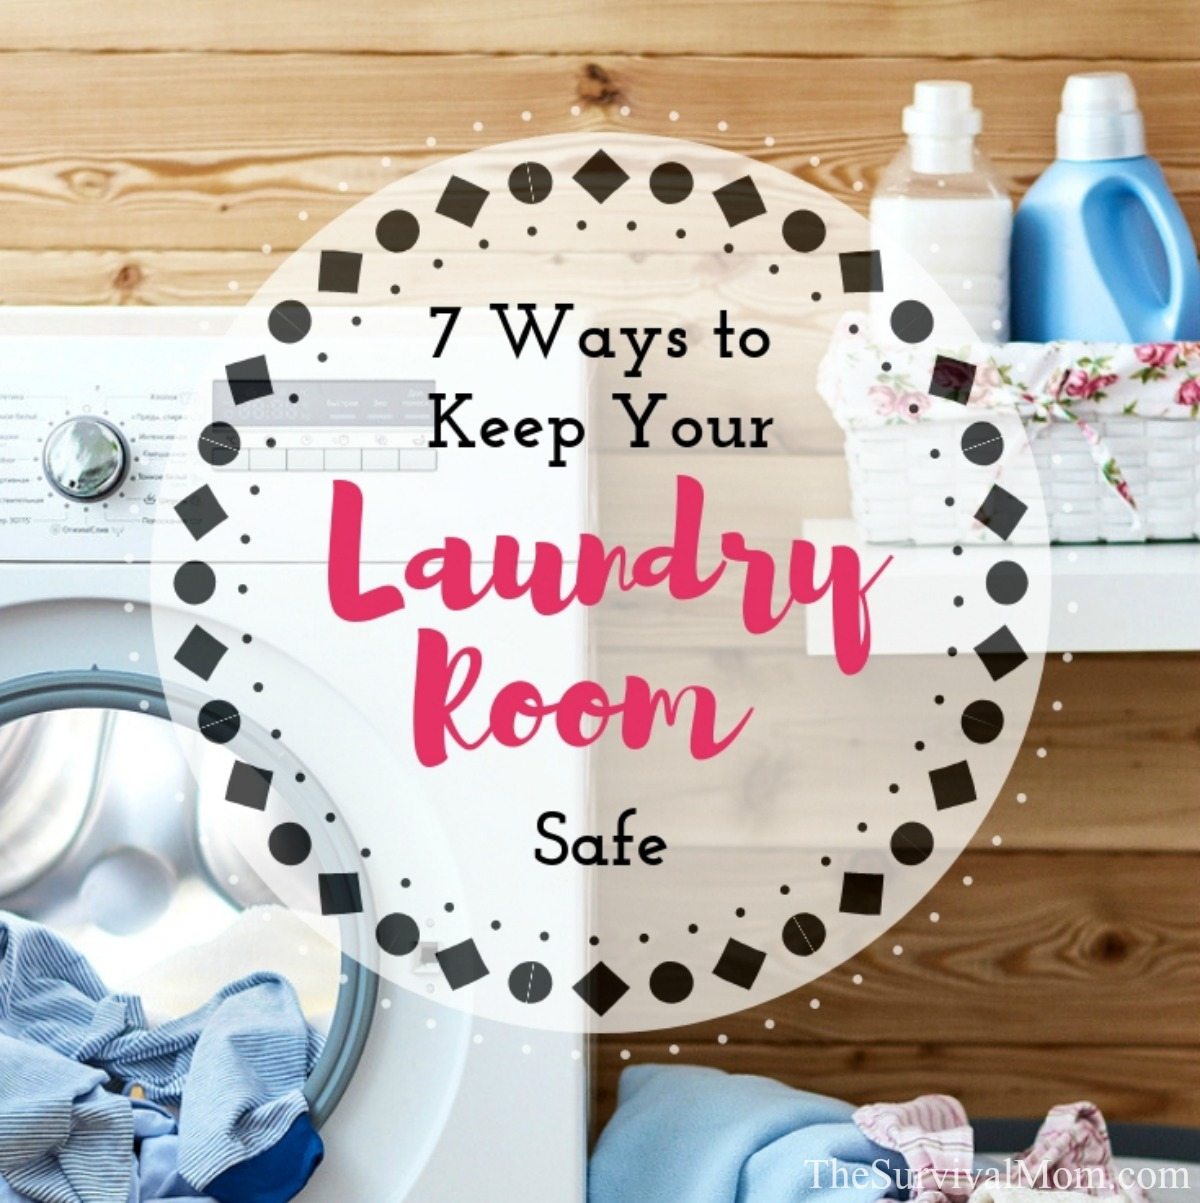 laundry room safety, laundry detergent pods, packetsup, laundry packets